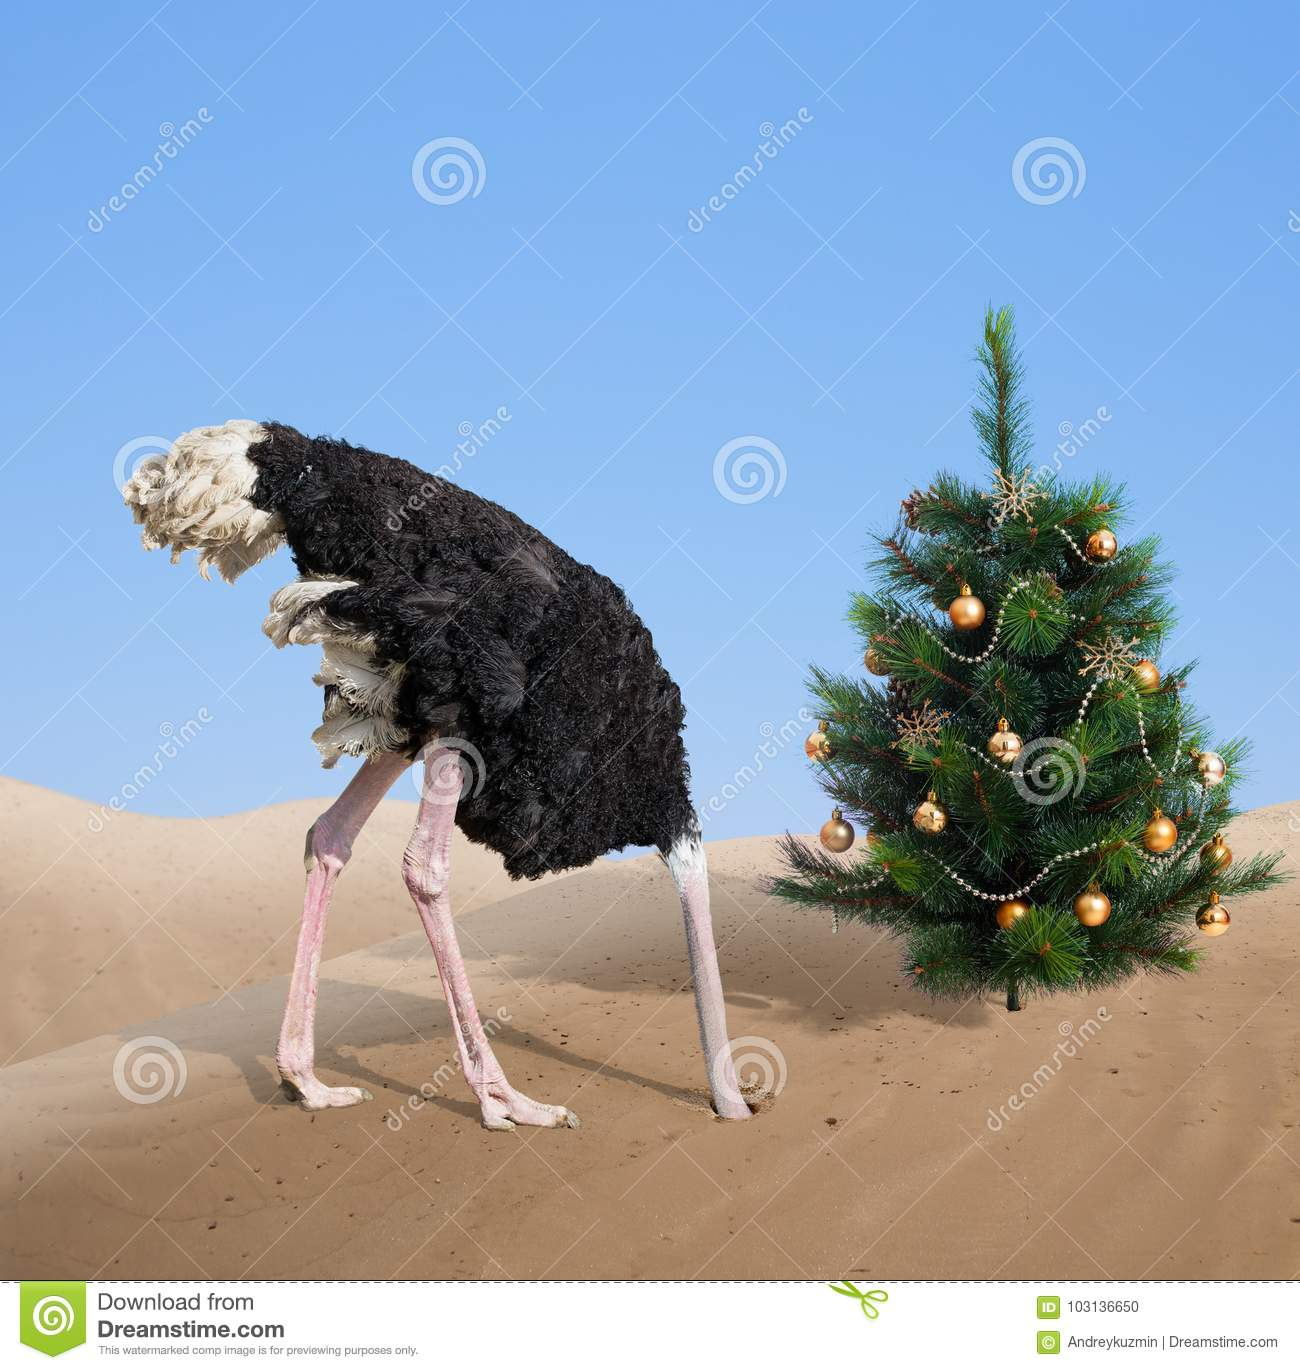 Christmas Tree In The Desert.Scared Ostrich Burying Head In Sand Under Xmas Tree Stock